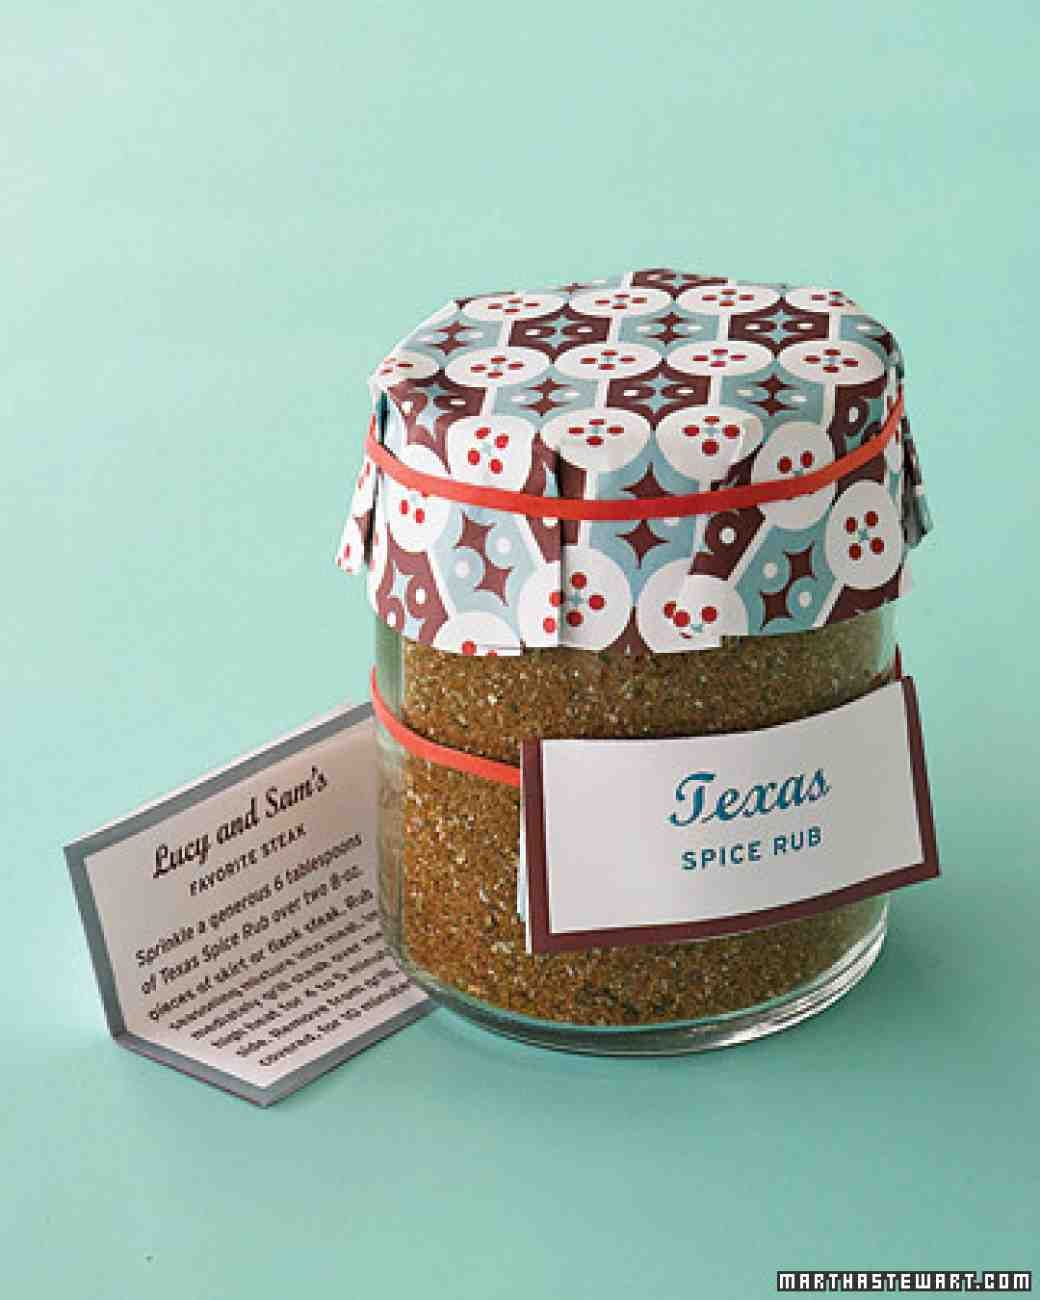 Guests will long remember their trip to the Lone Star State with this homemade spice rub tucked into their travel bags.